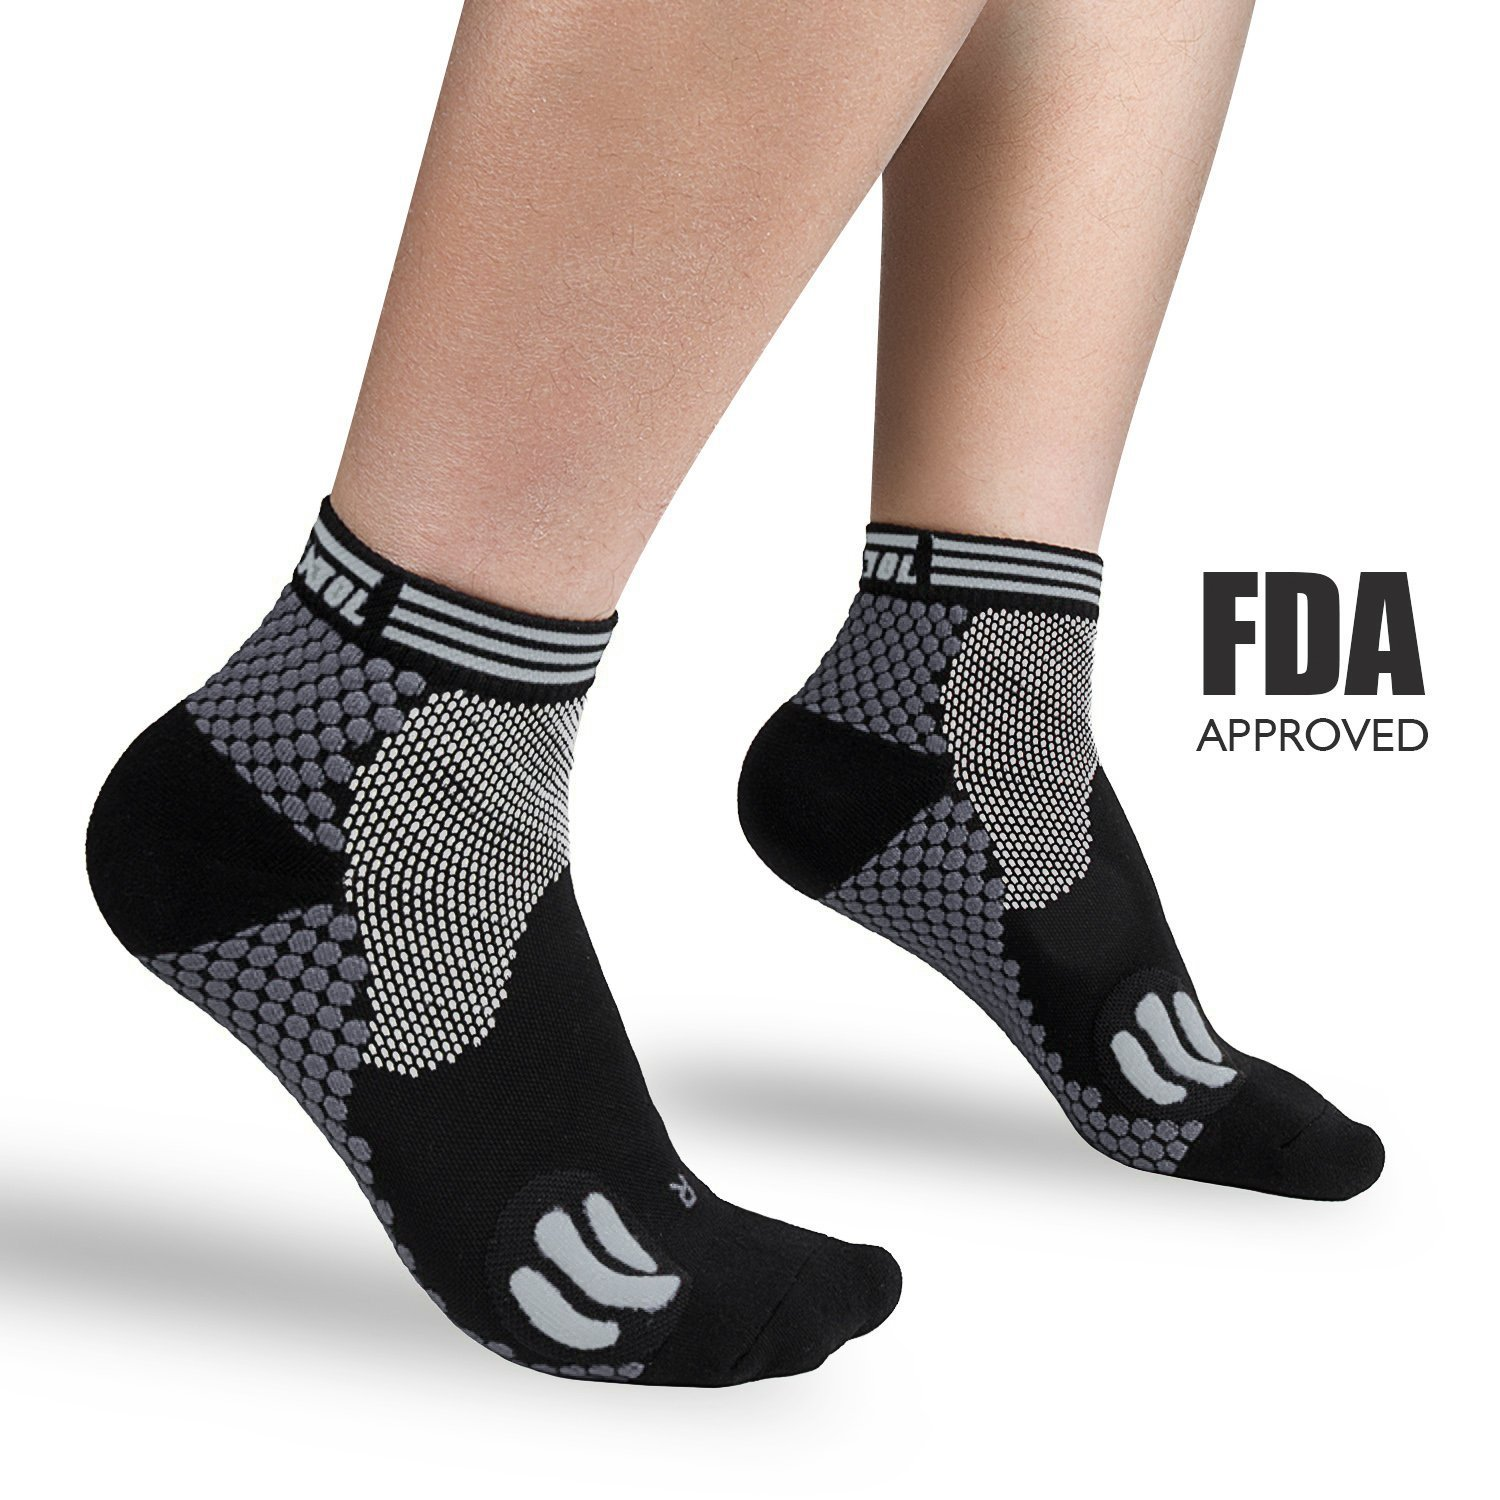 Plantar Fasciitis Socks, Compression Socks with Ankle & Arch Support for Men and Women Foot & Heel Sleeves to Relieve Pains (Large)